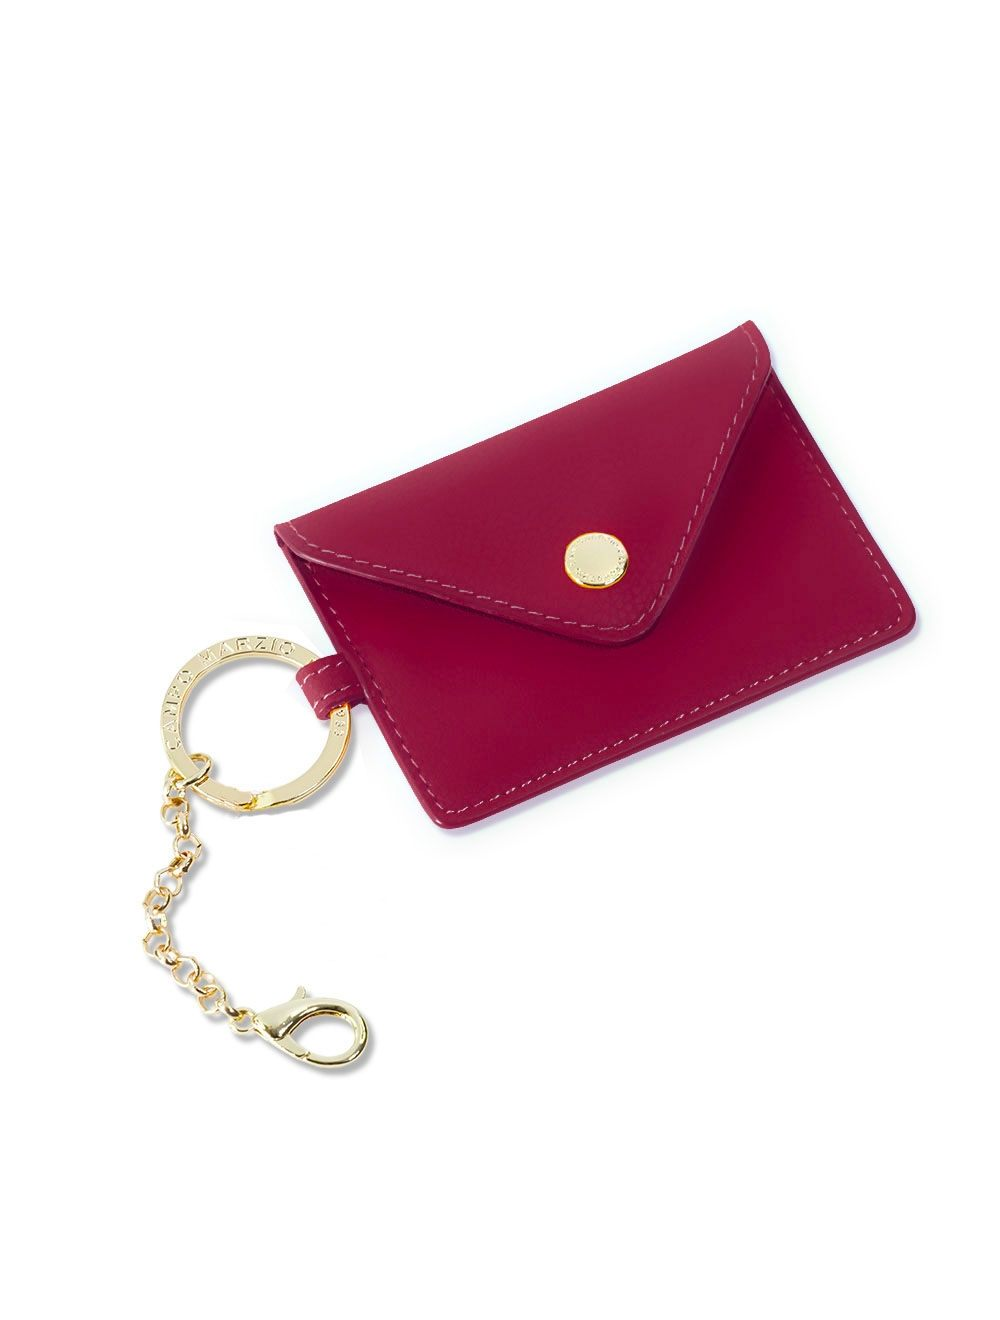 Lev Business Card Holder - Currant Red